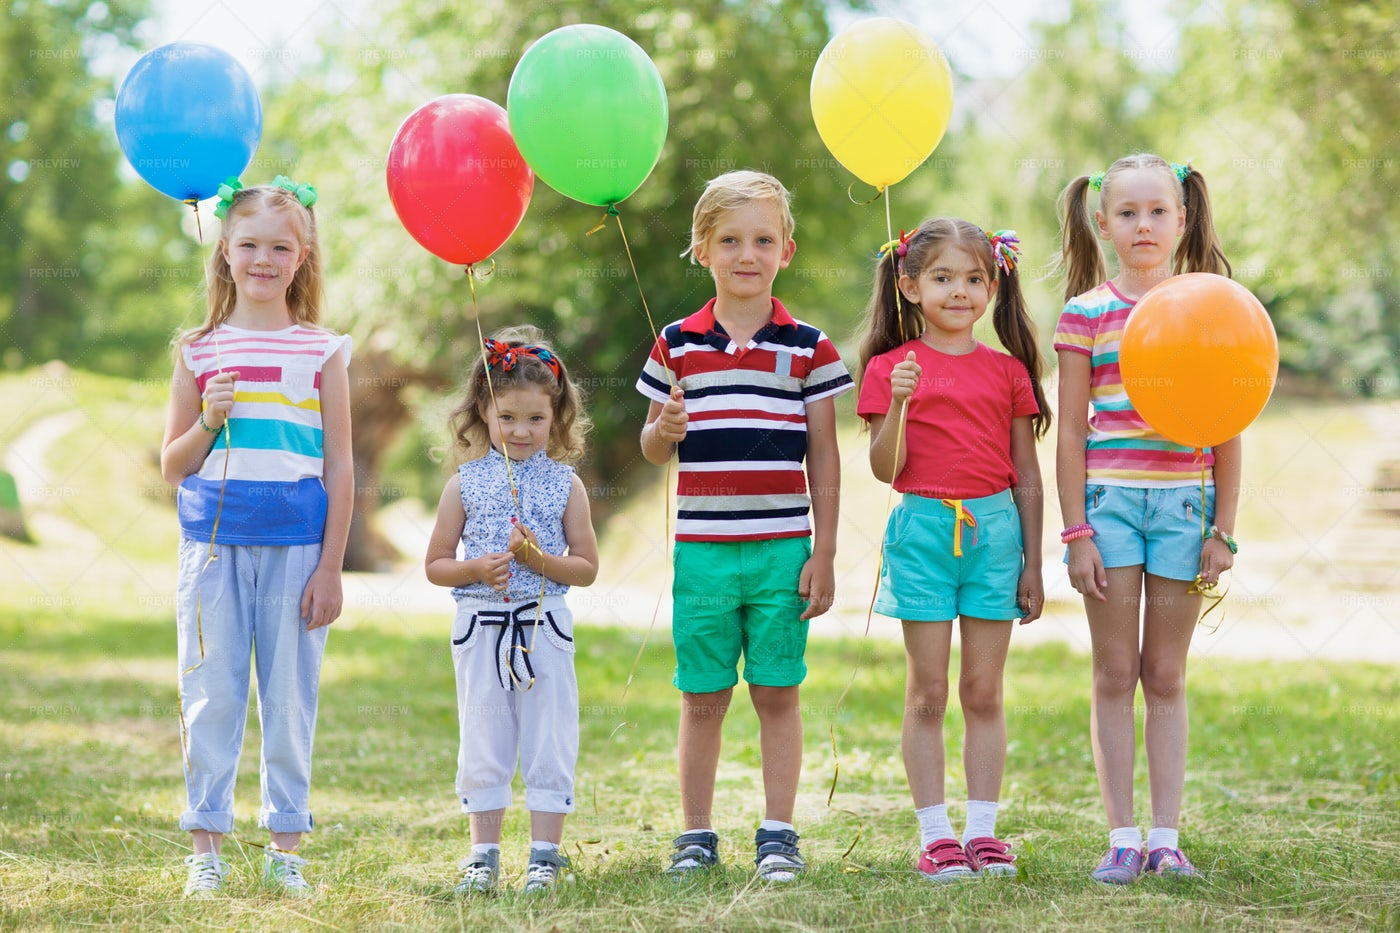 Kids With Balloons: Stock Photos